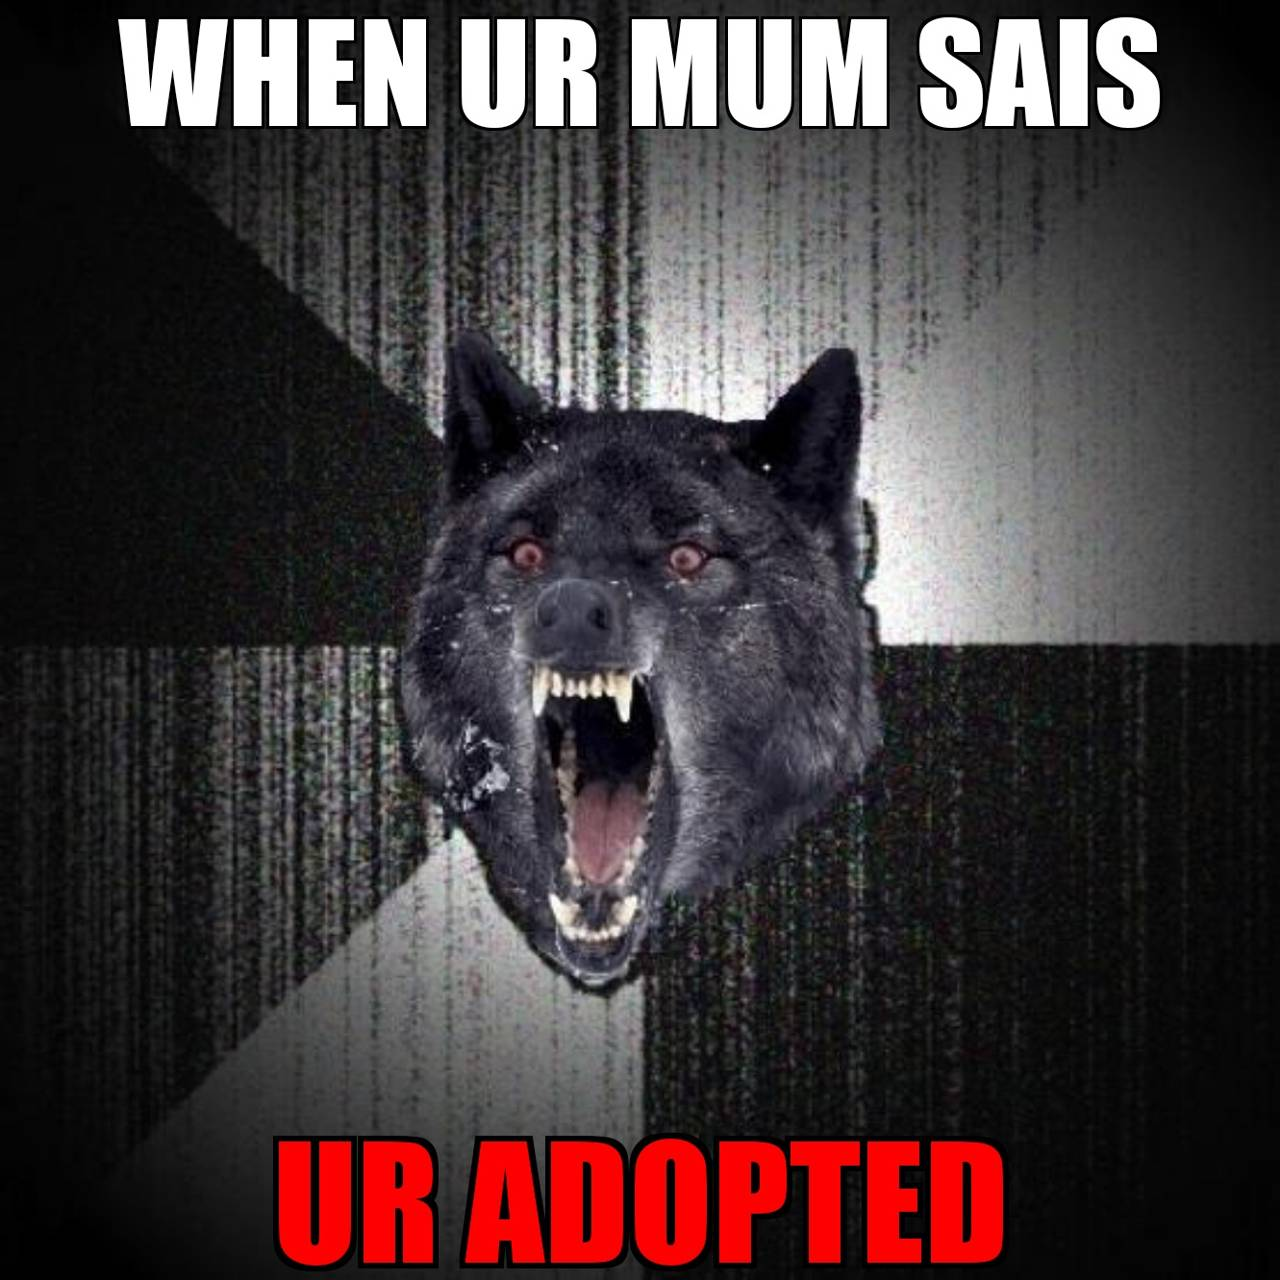 Alex is adopted